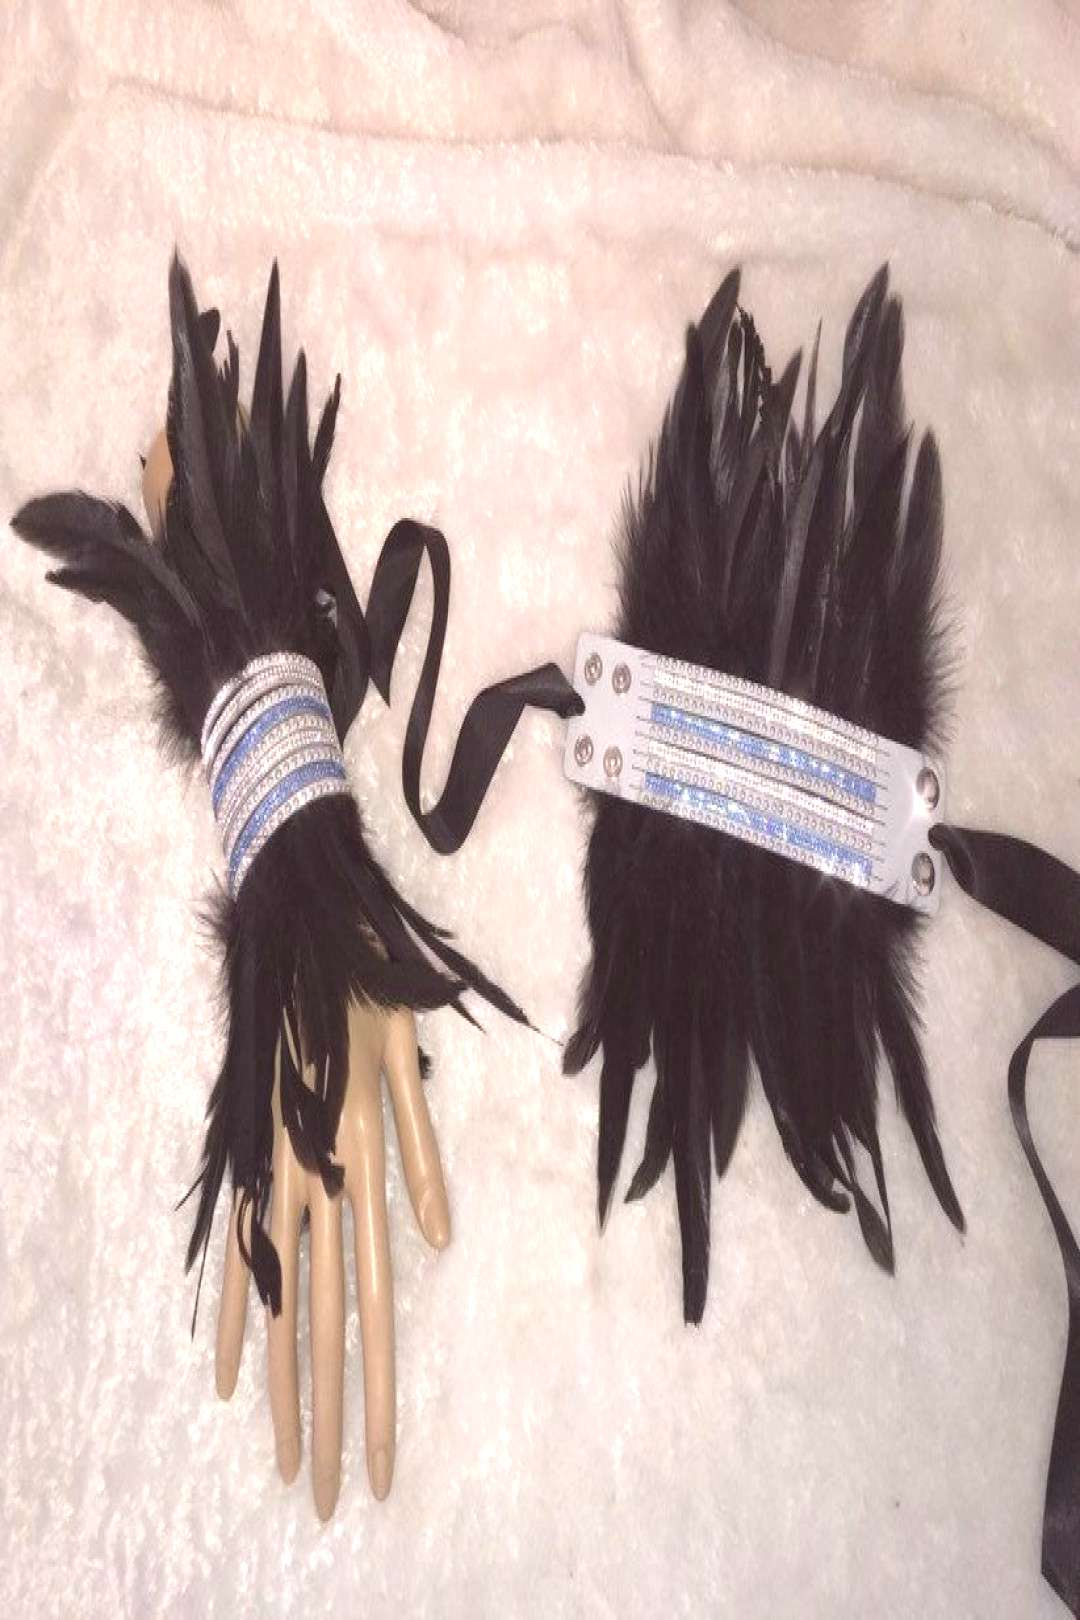 Baby Blue And Black Crystal Feather Cuff Bracelets. Burlesque Gothic Rockstar Cabaret Costume Acces